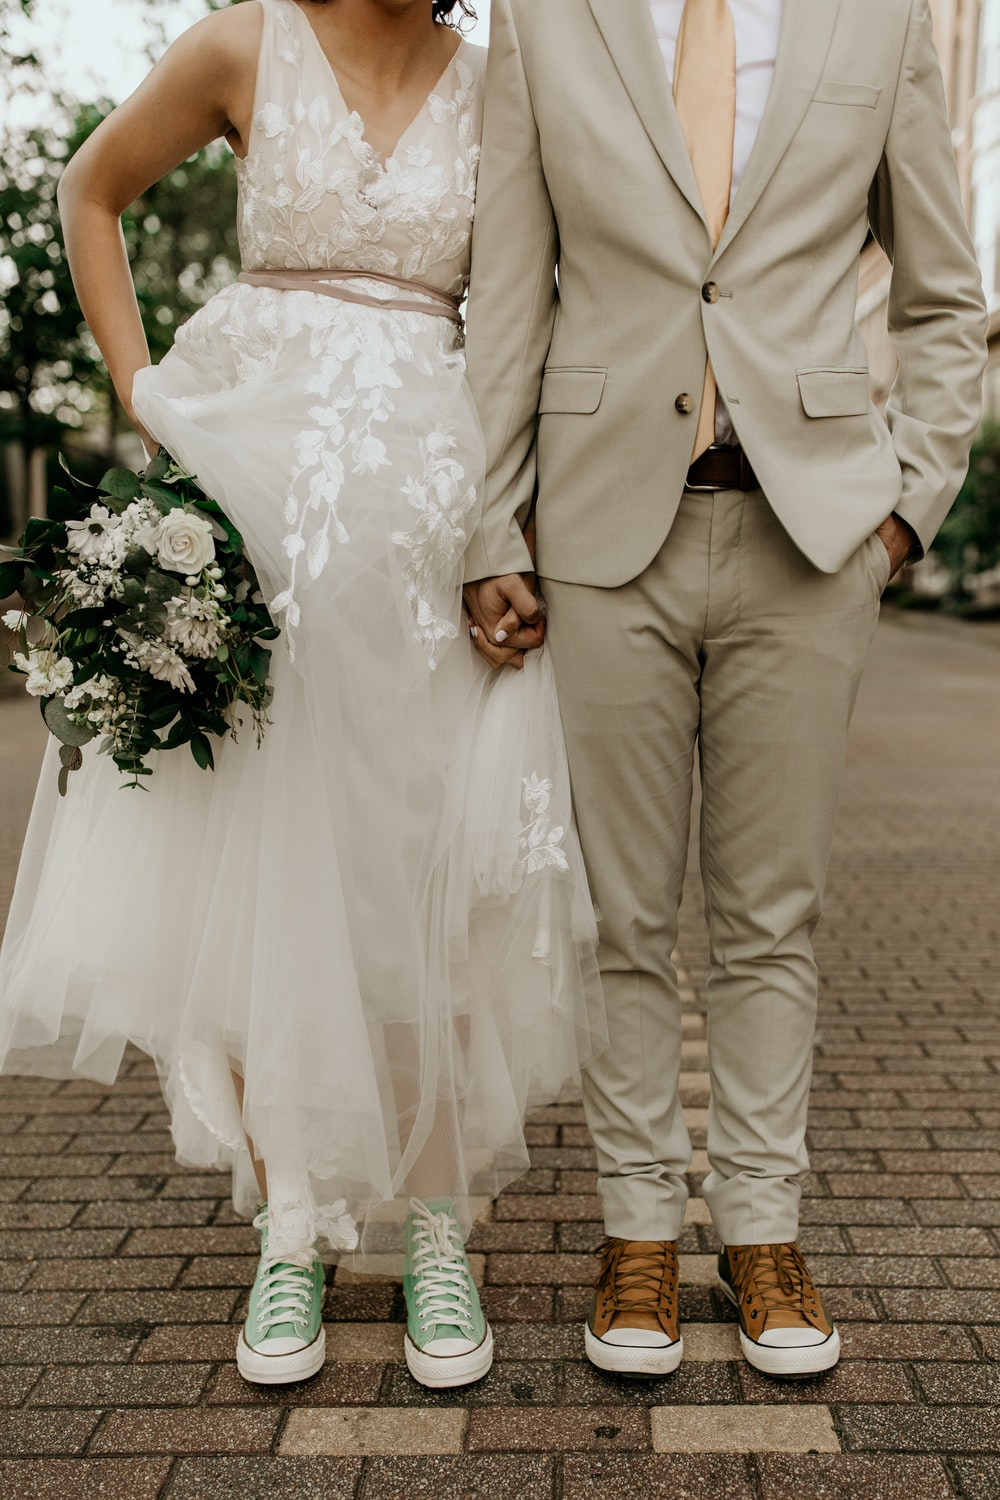 man in gray suit jacket and woman in white wedding dress holding bouquet of white flowers